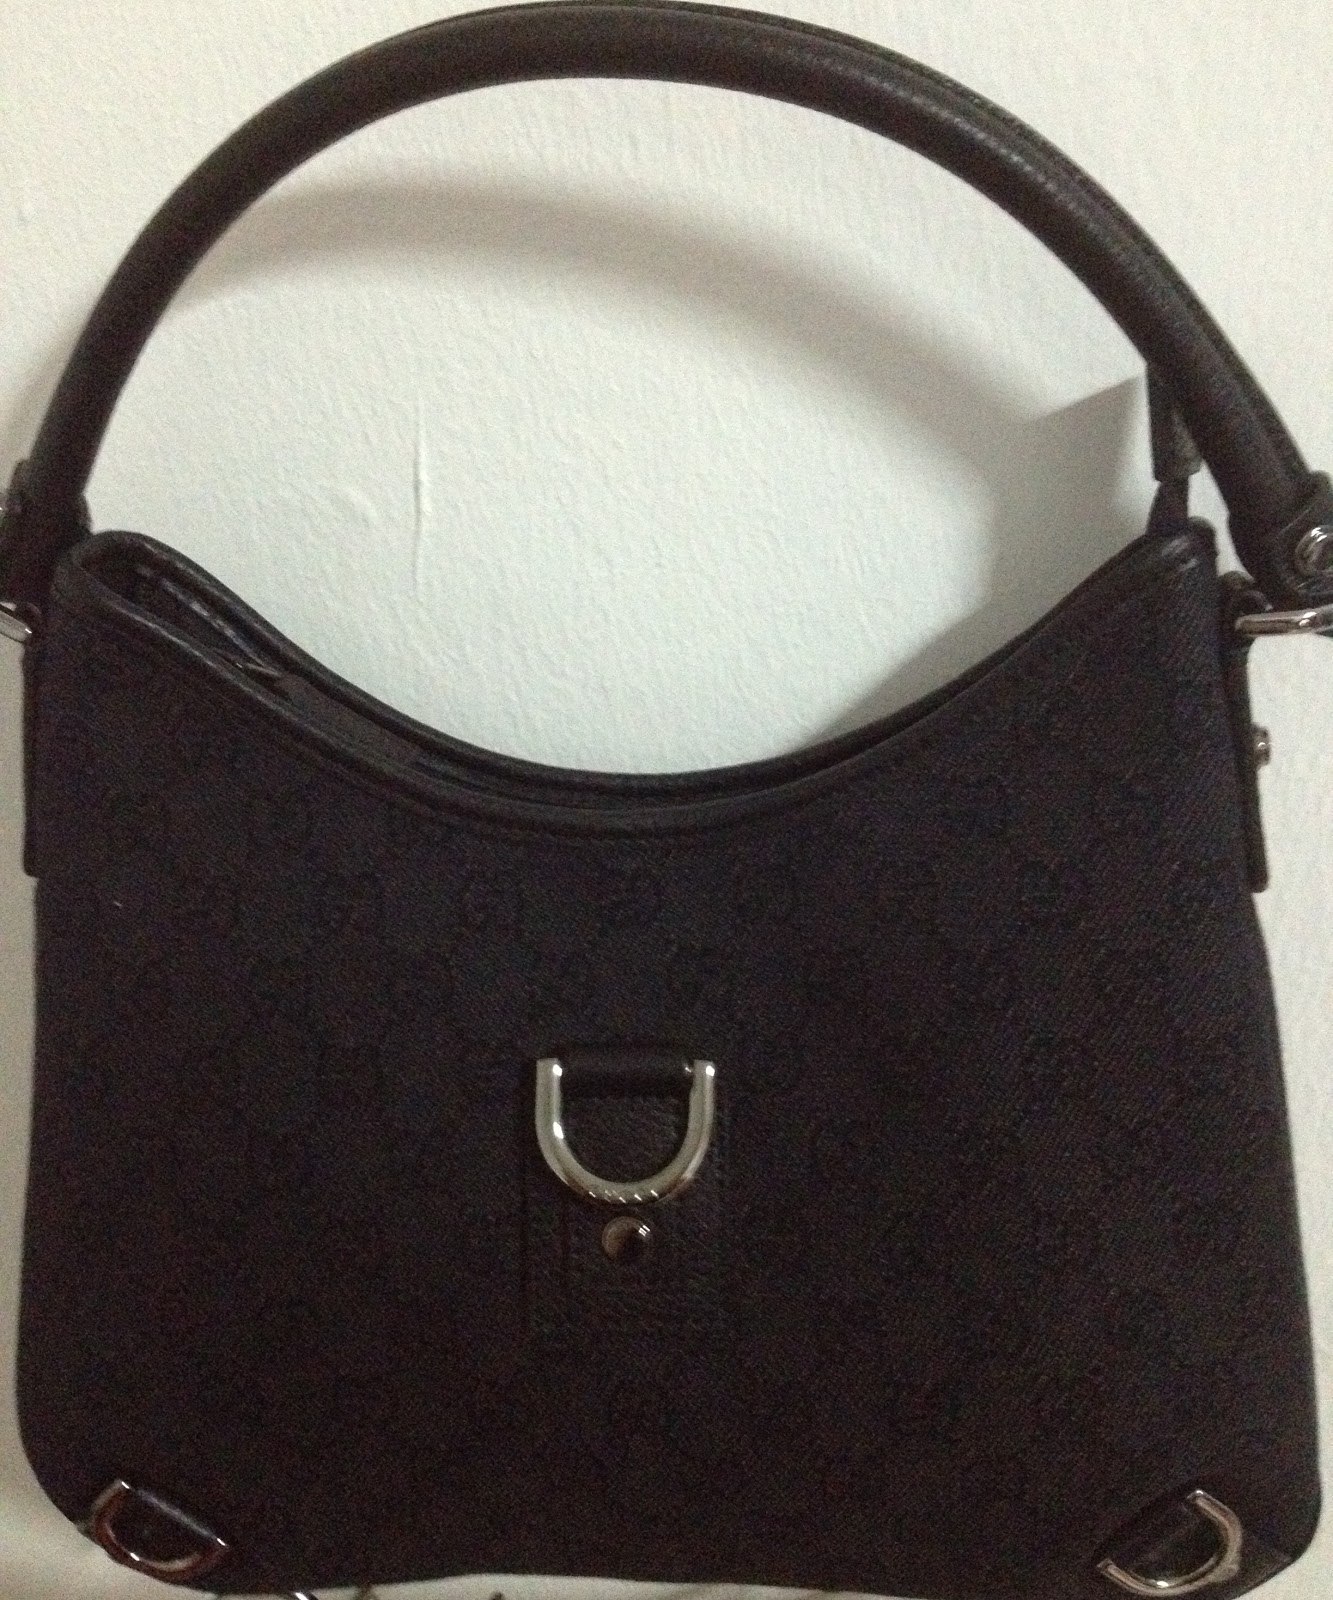 ebe0ab01443b Authentic Branded Bags in Singapore